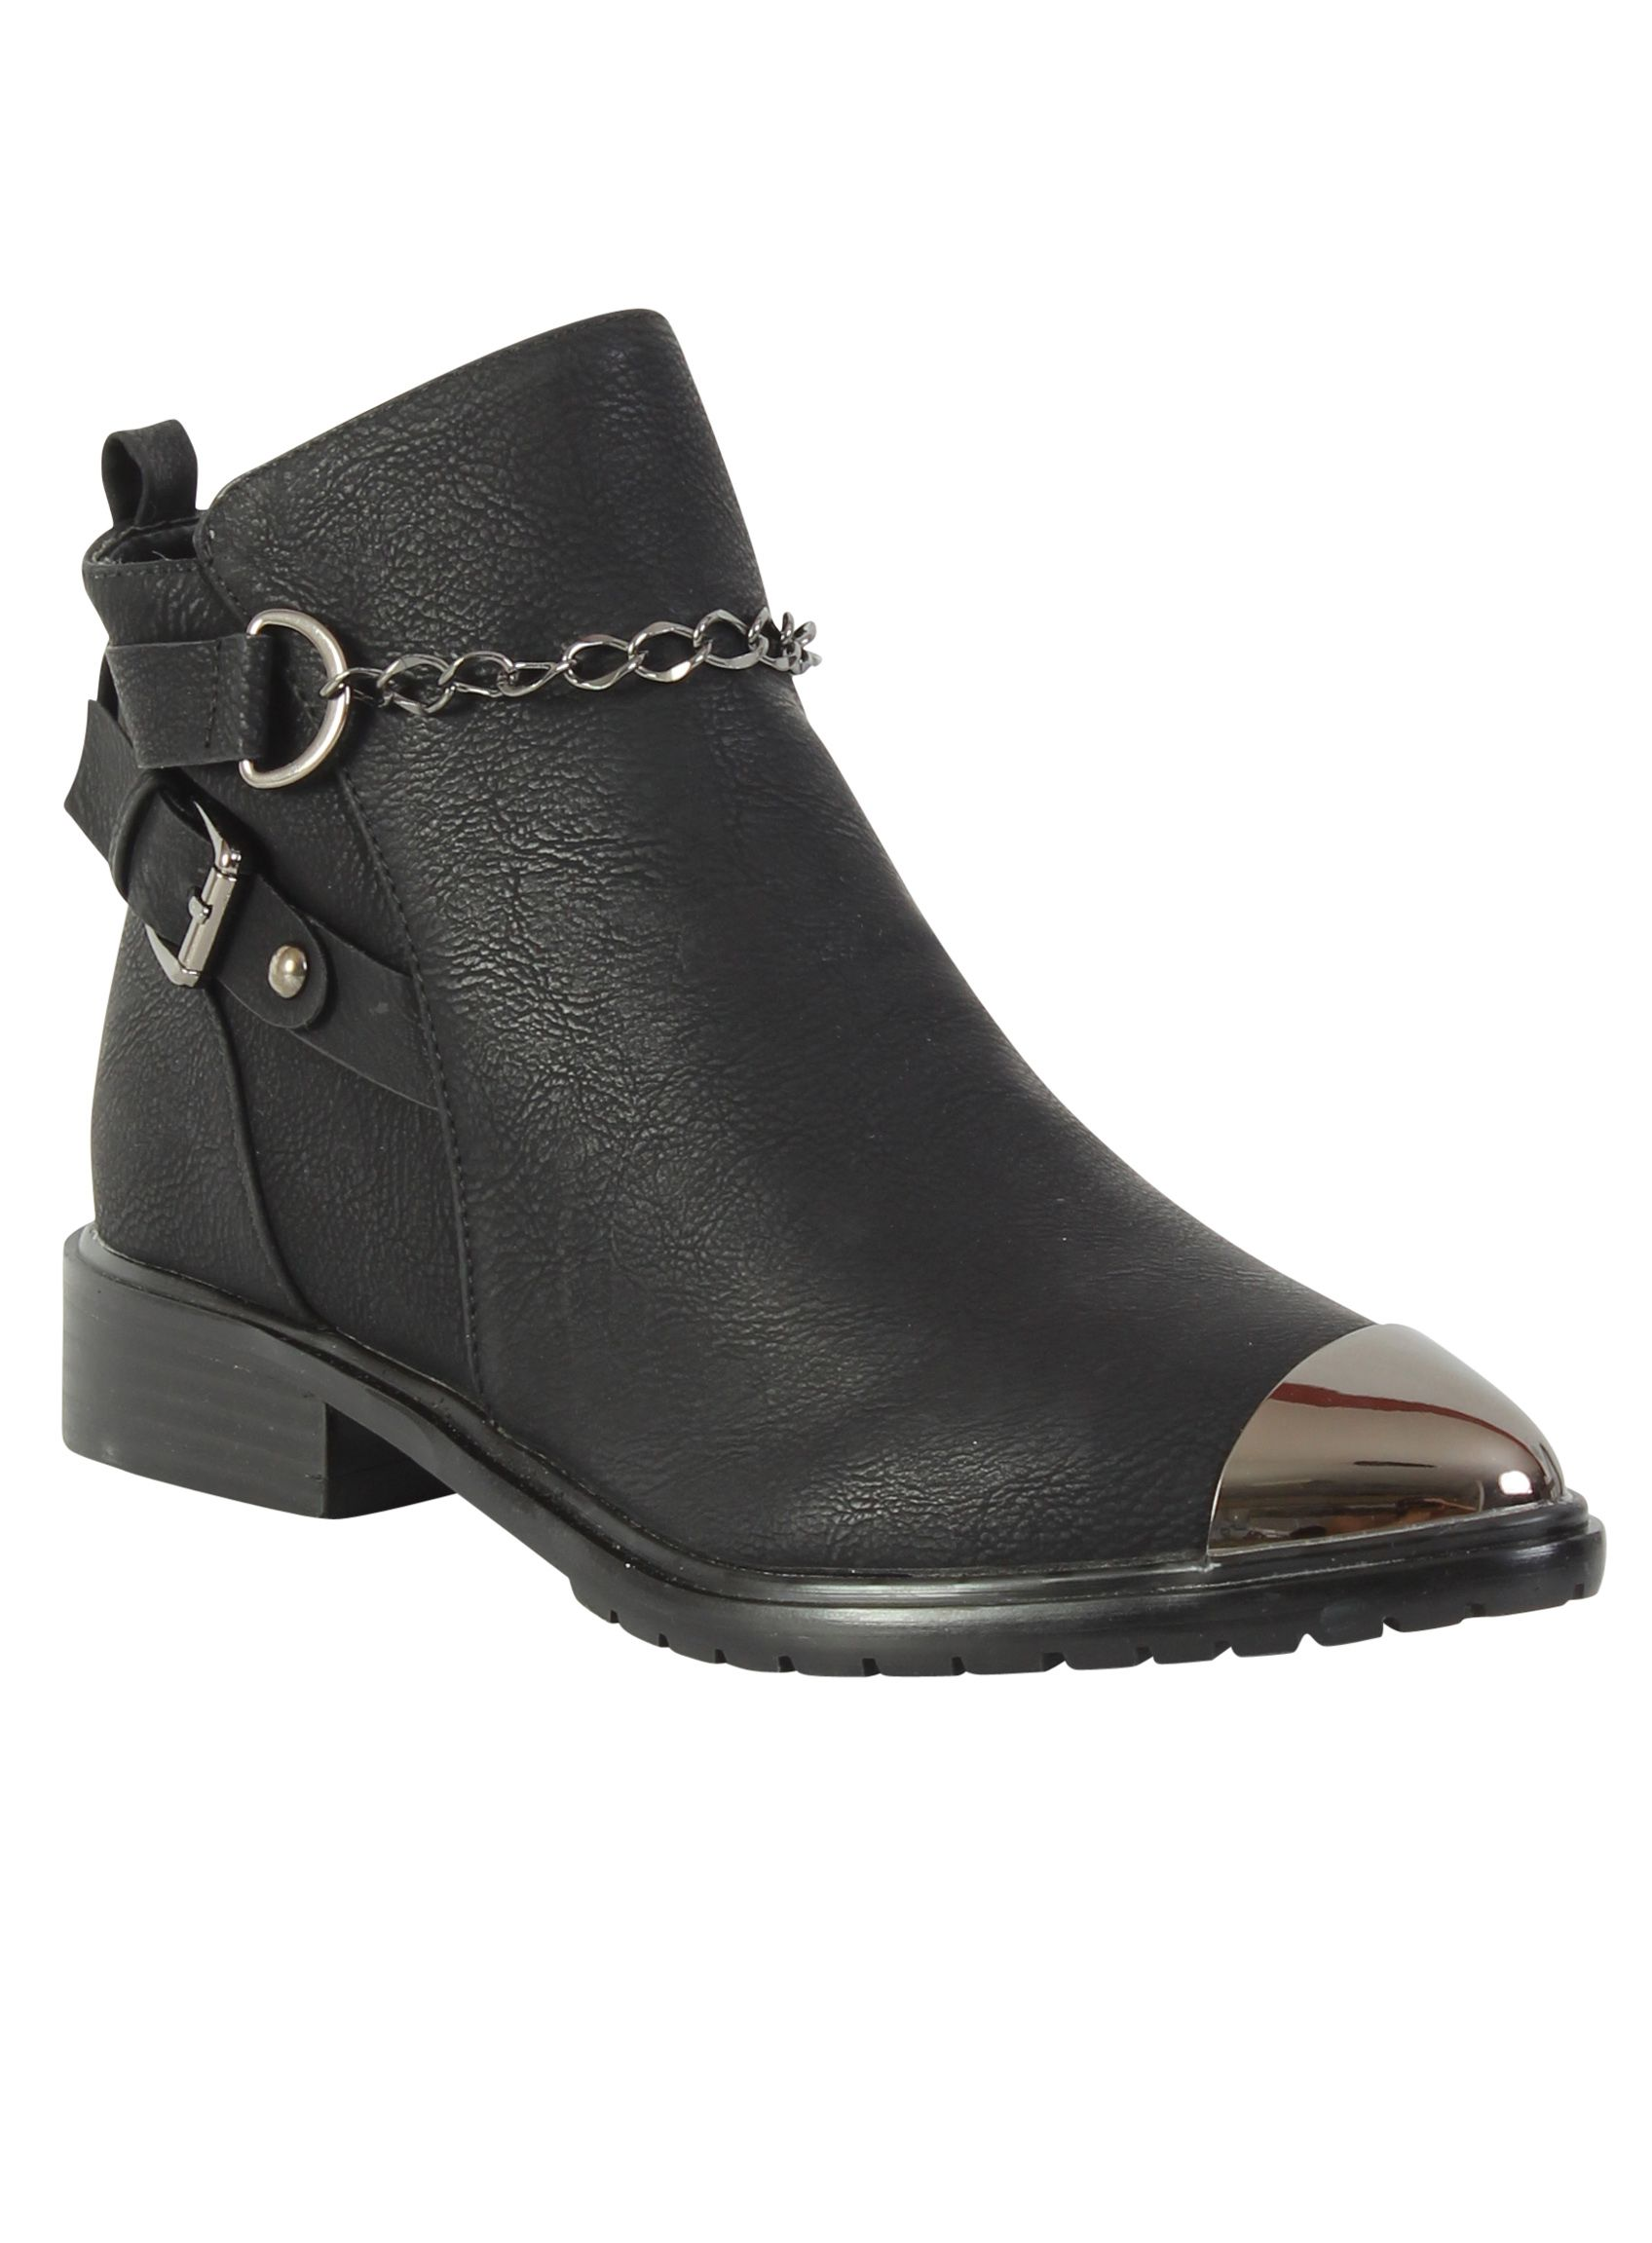 Betsy Betsy Toe cap ankle boot, Black